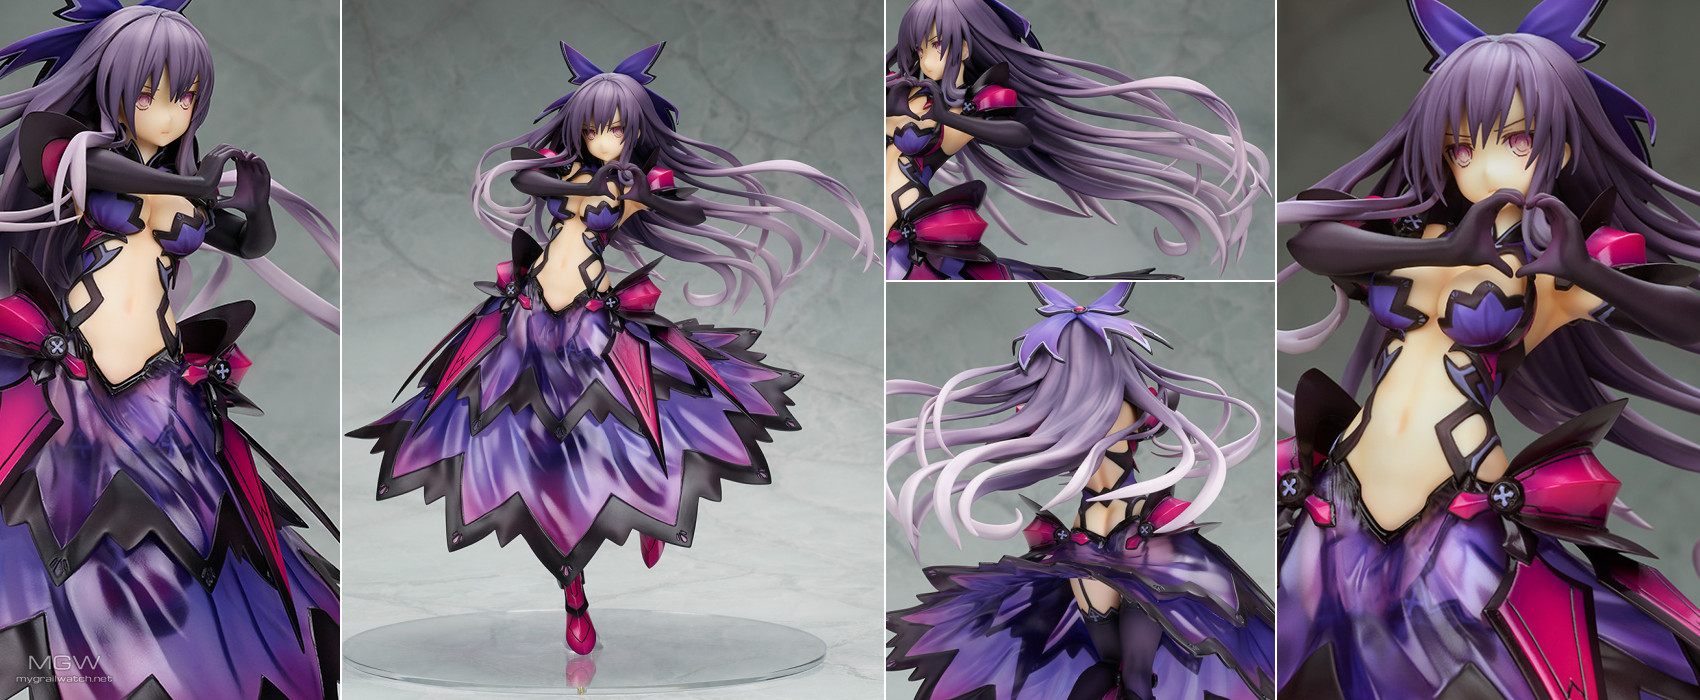 Date A Live Yatogami Tohka Inverse Form ver. by HOBBY STOCK